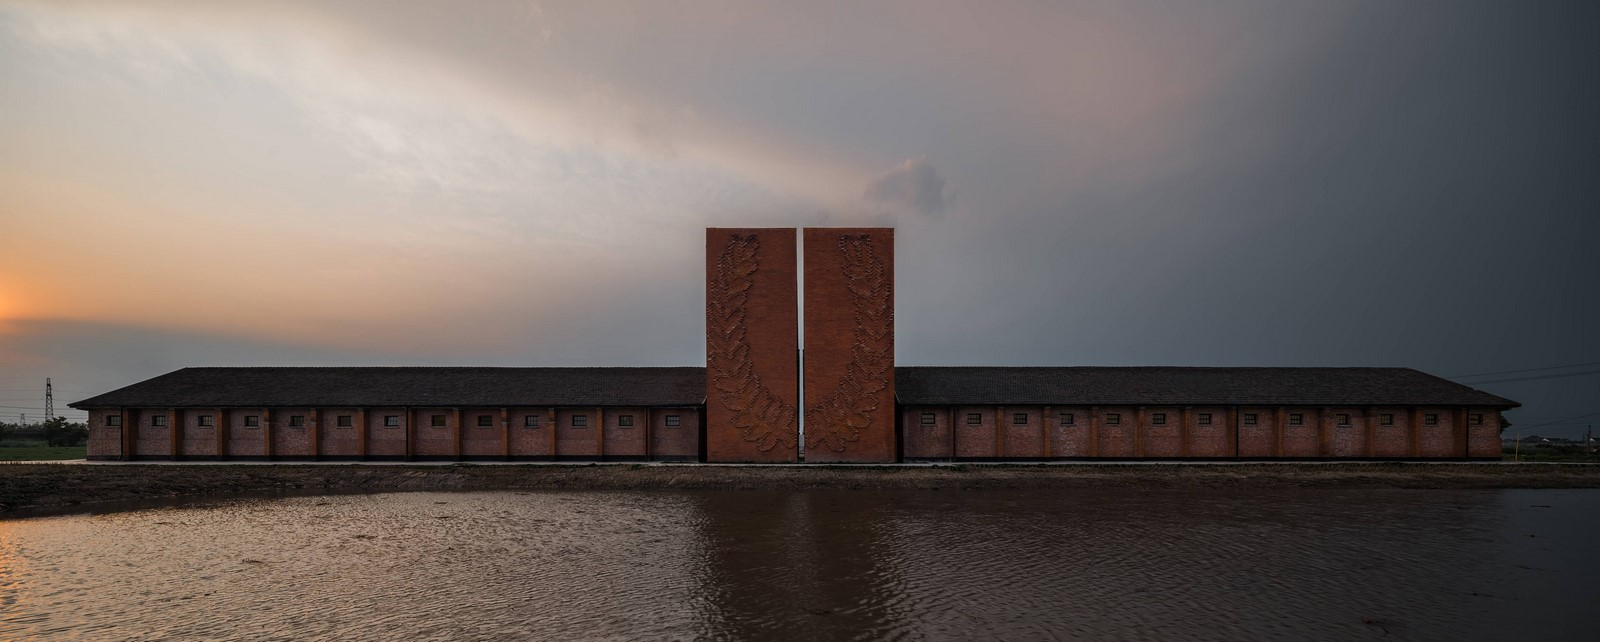 Old Granaries repurposed As An Art Centre With Flowing Brick Corridors In Jiaxing by Roarc Renew - Sheet7